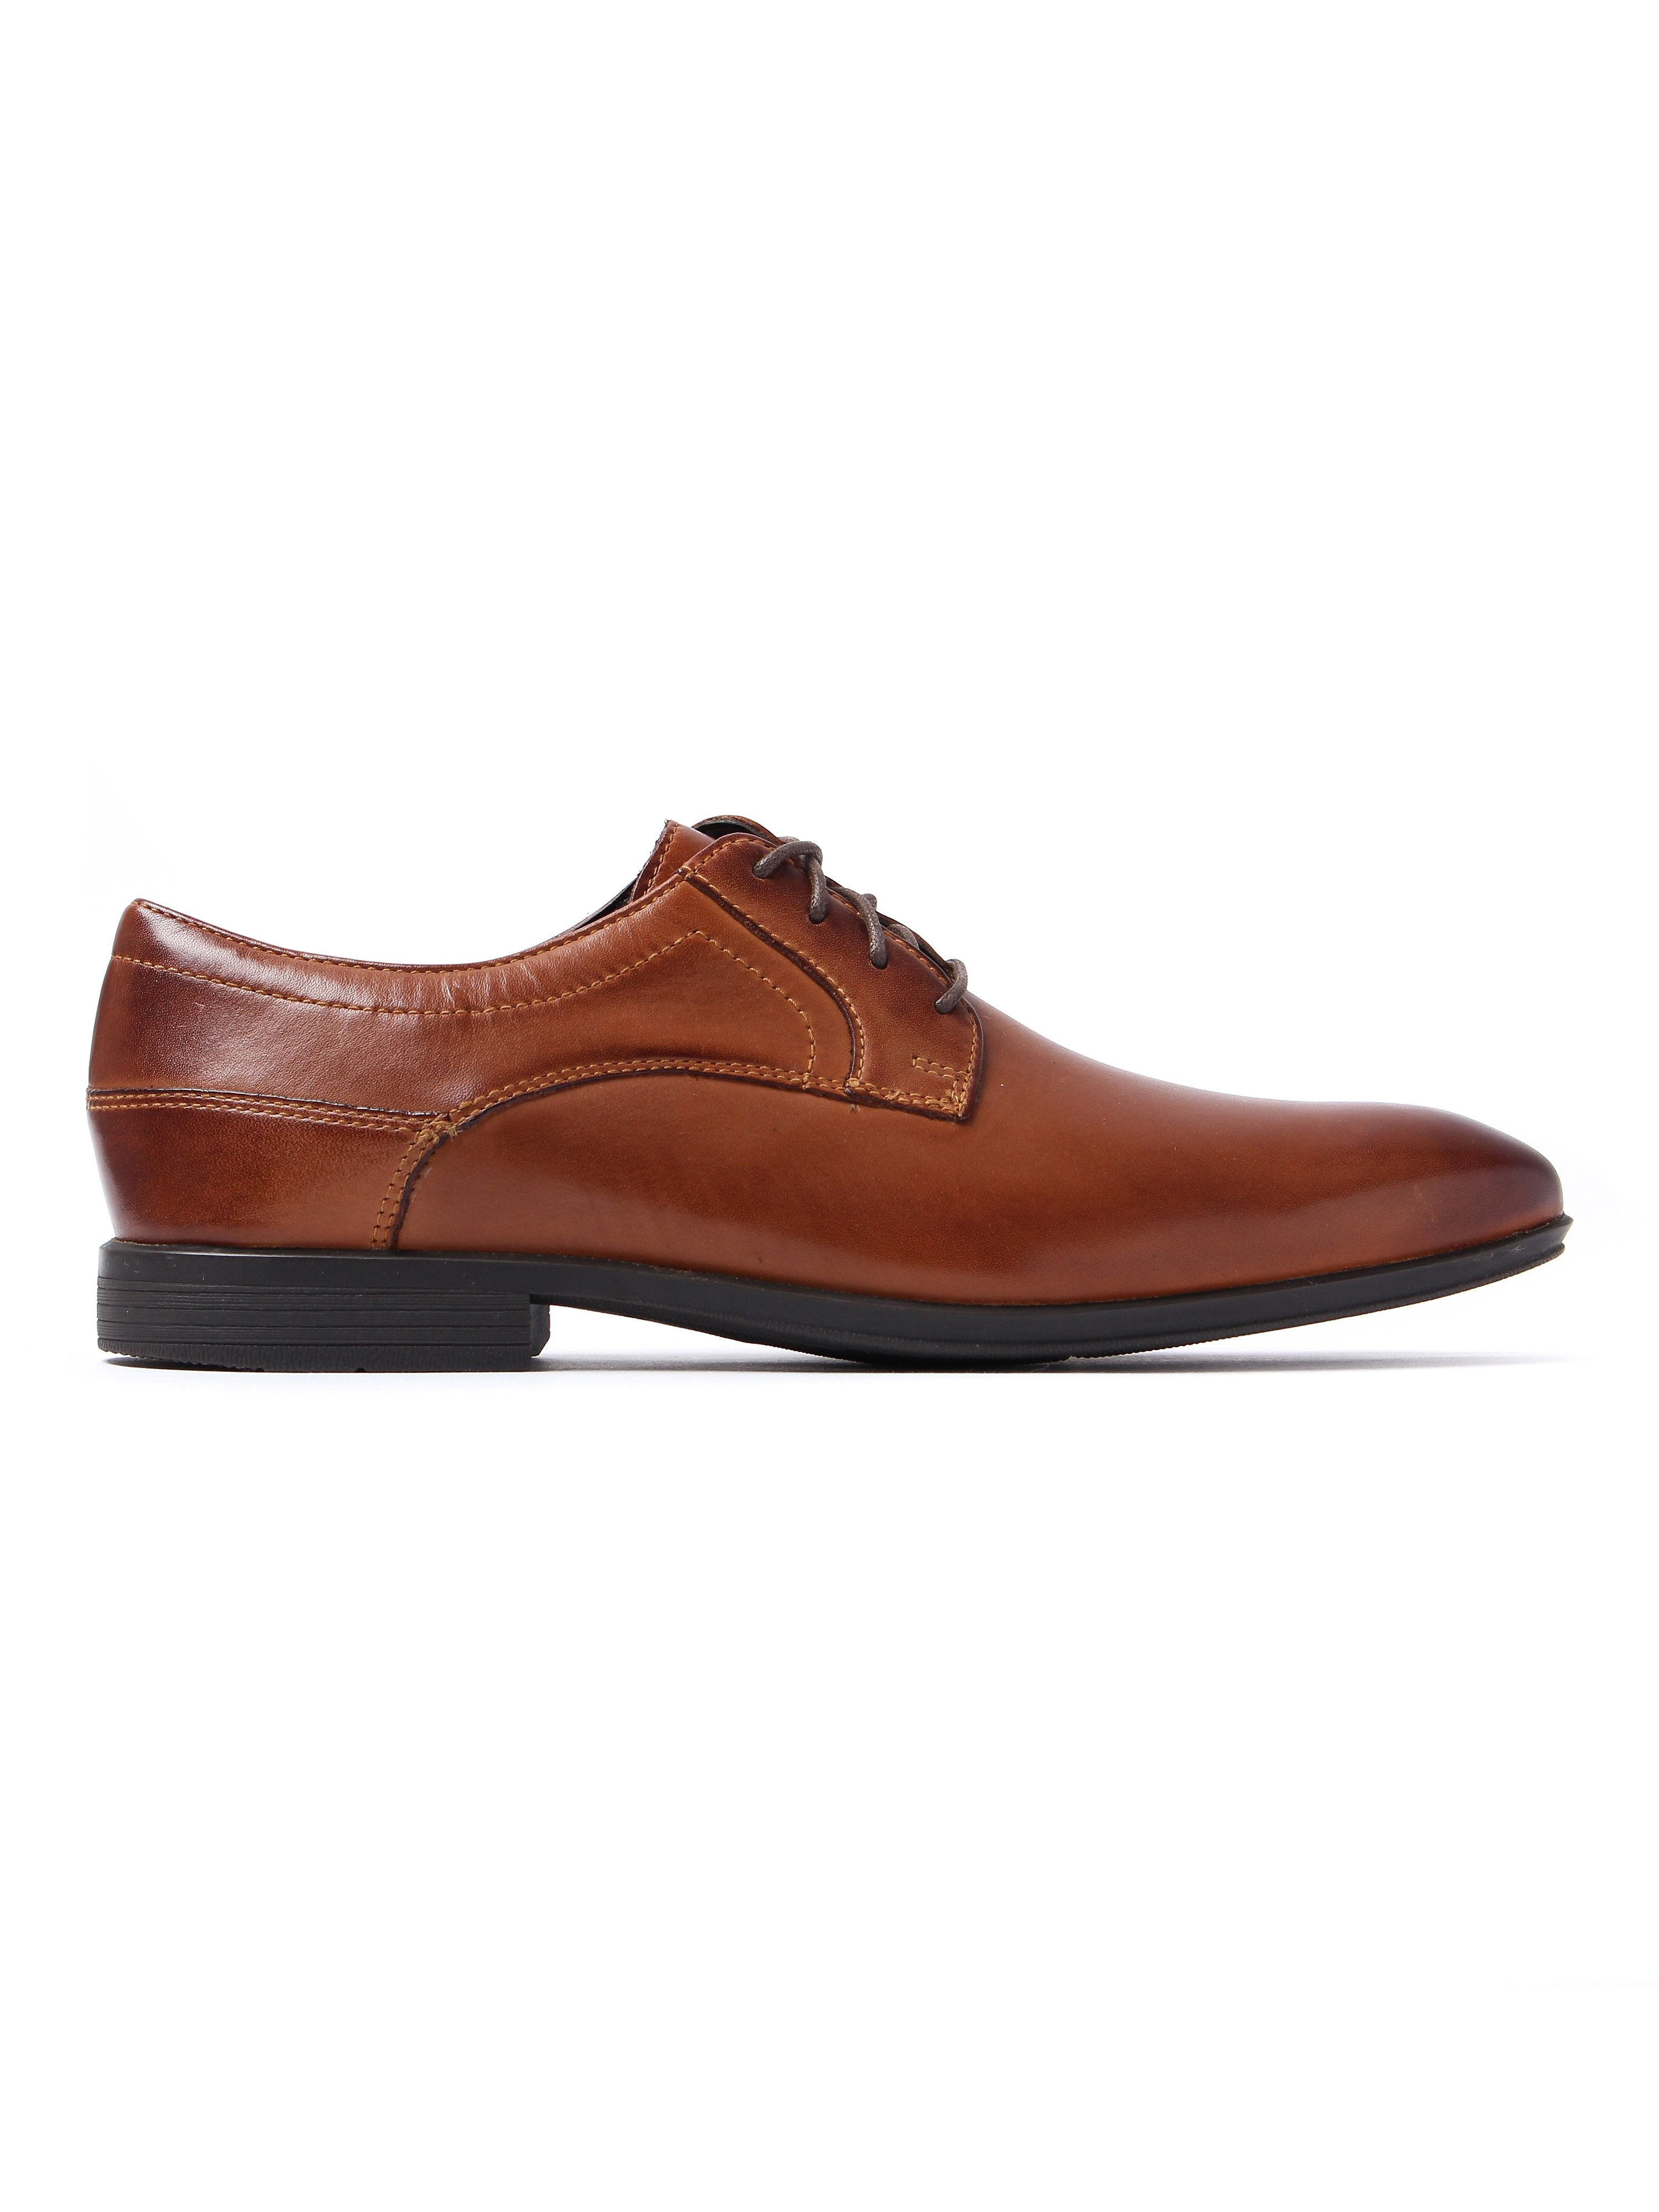 Rockport Men's Style Connected Plain Toe Derby Shoes - Brown